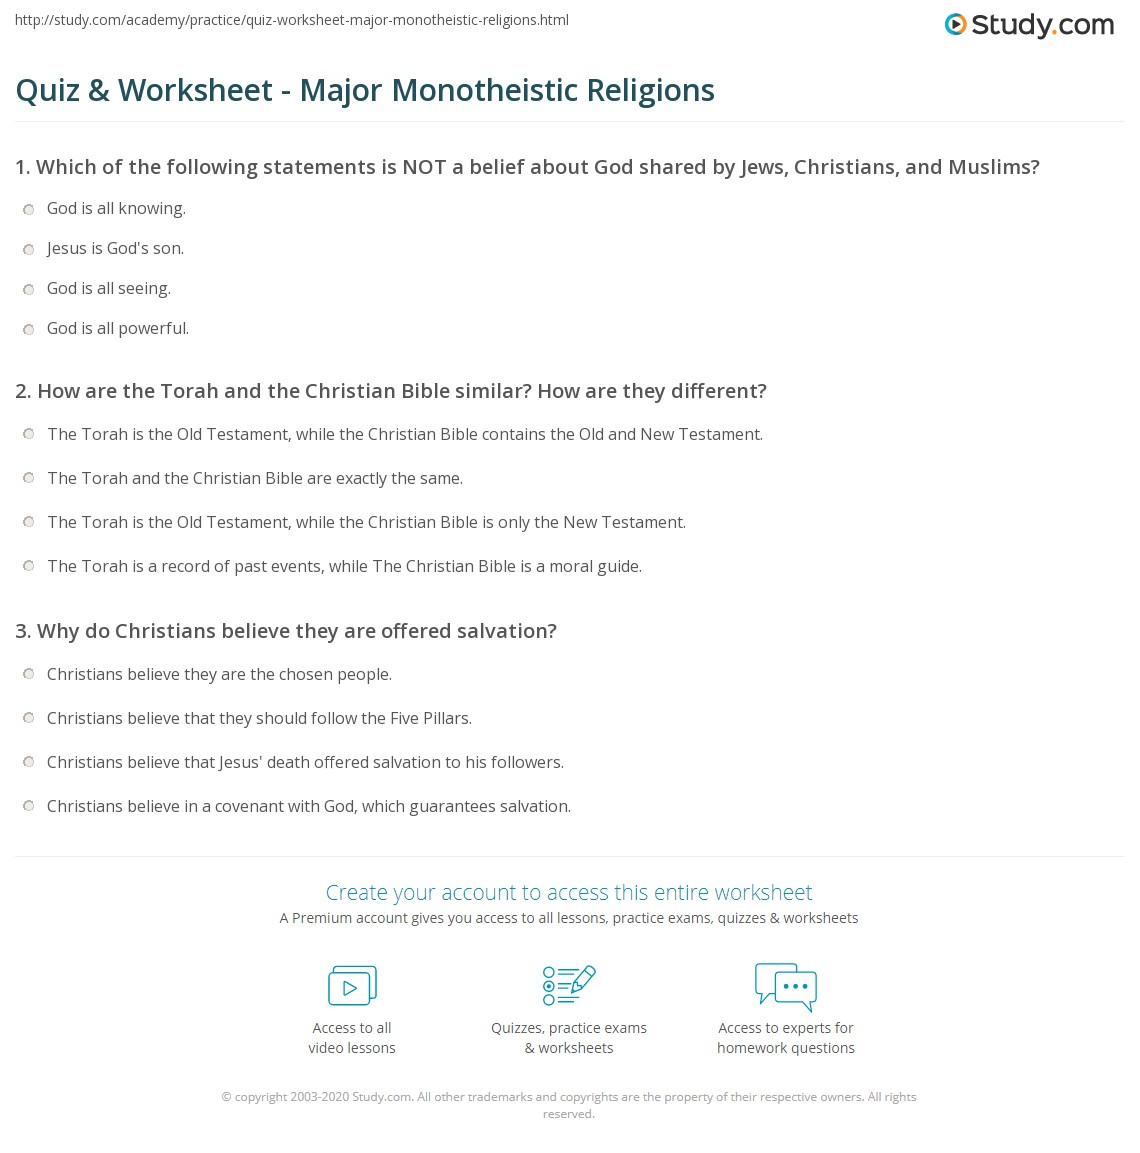 Quiz Worksheet Major Monotheistic Religions Studycom - 3 largest religions